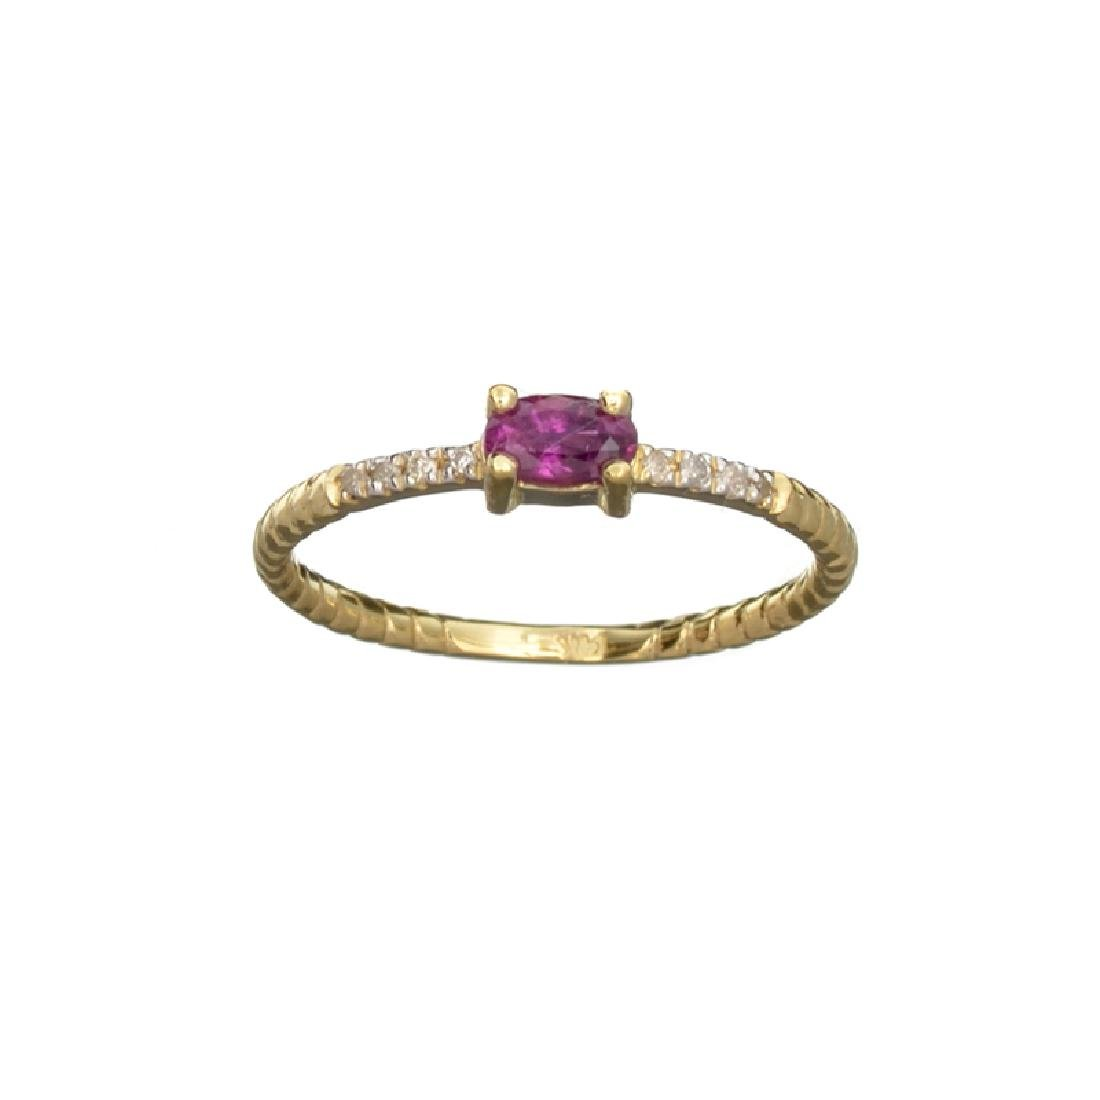 APP: 0.6k Fine Jewelry 14KT Gold, 0.29CT Red Ruby And